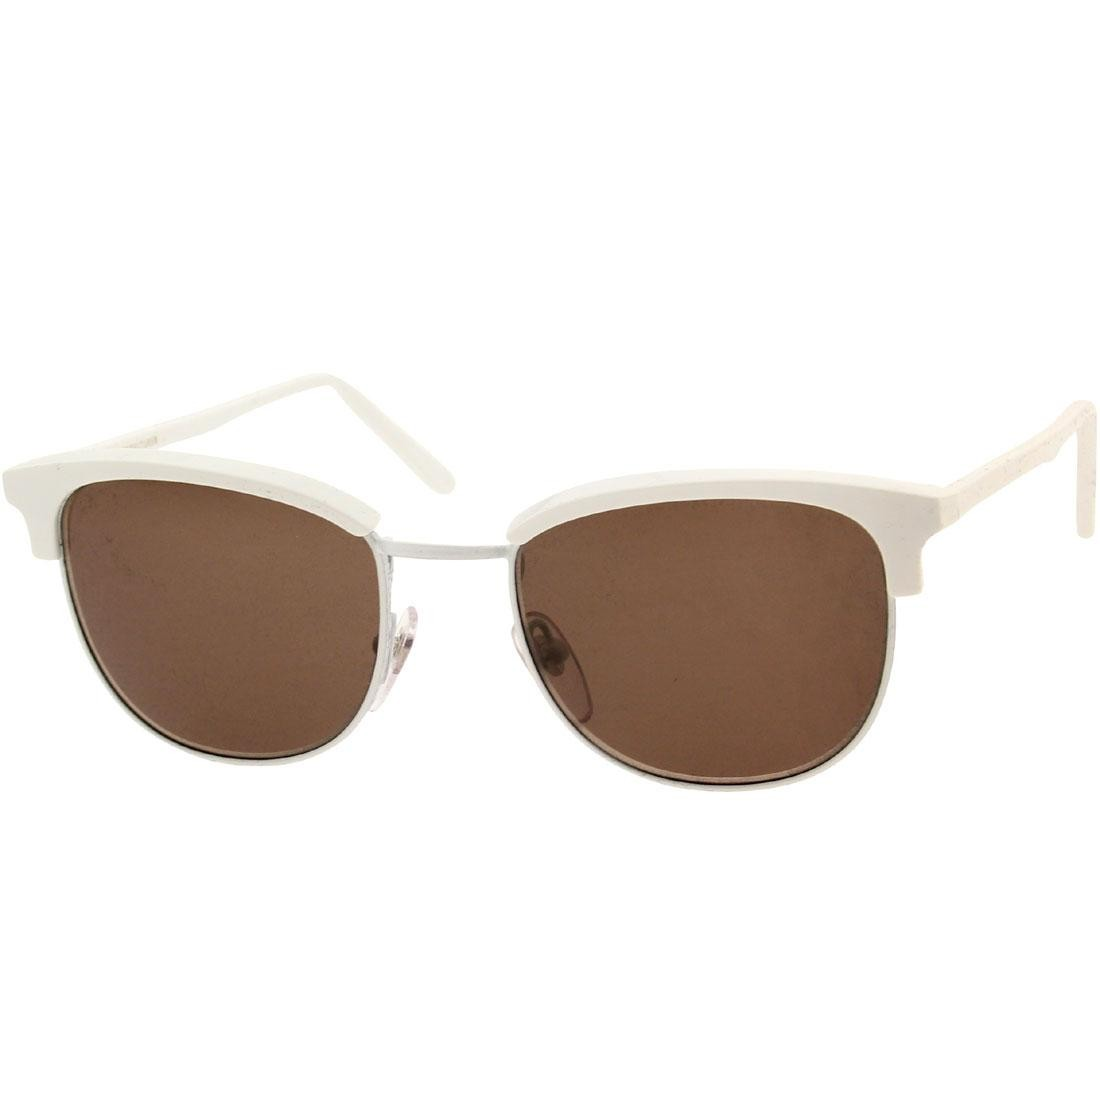 Super Sunglasses Terazzo - Crociera (silver / brown)